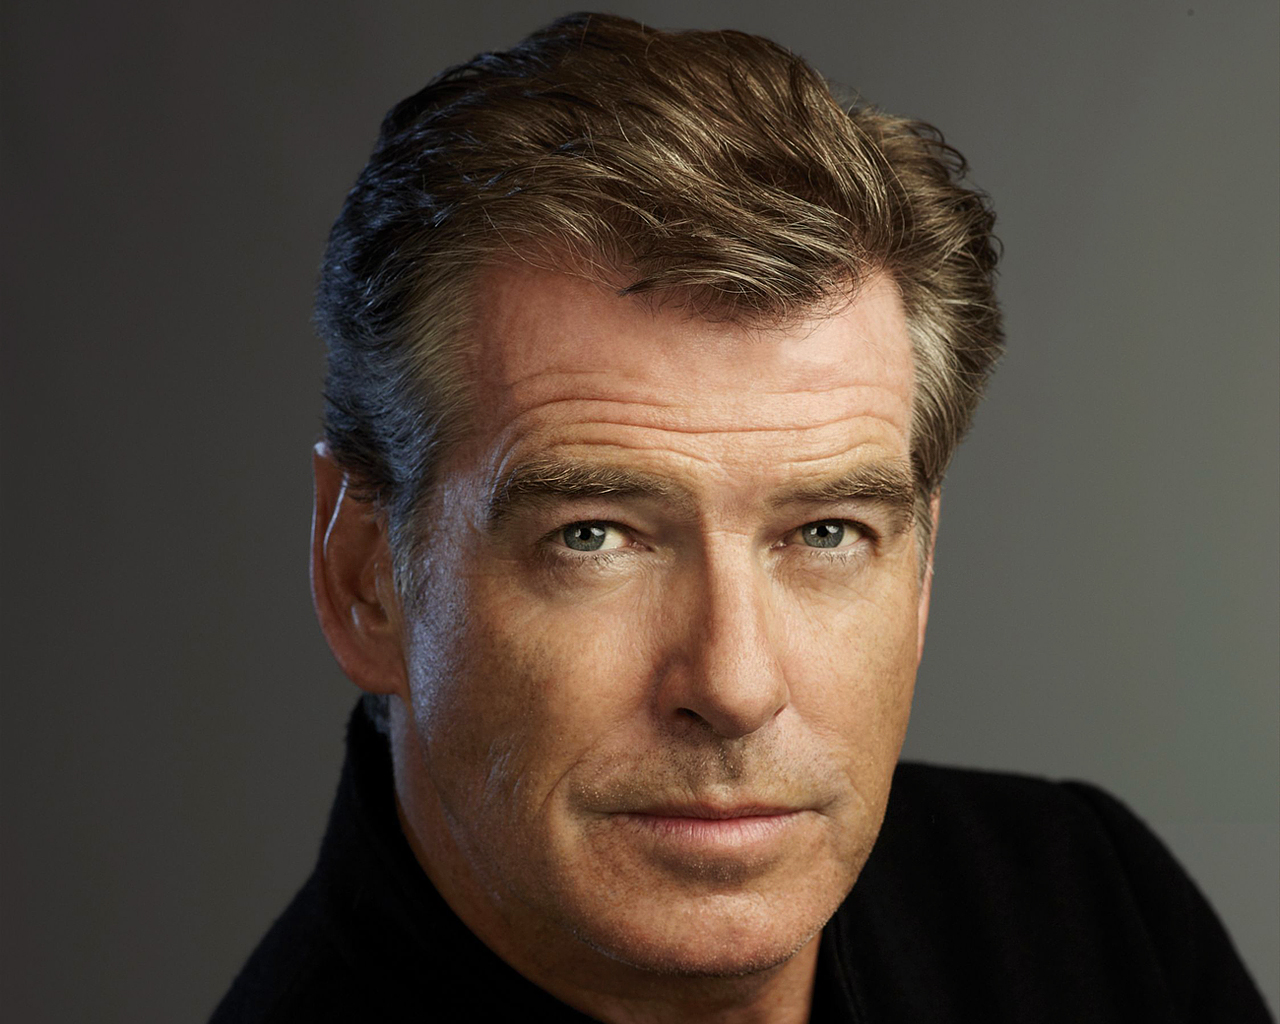 pierce brosnan mobile wallpaper 55637